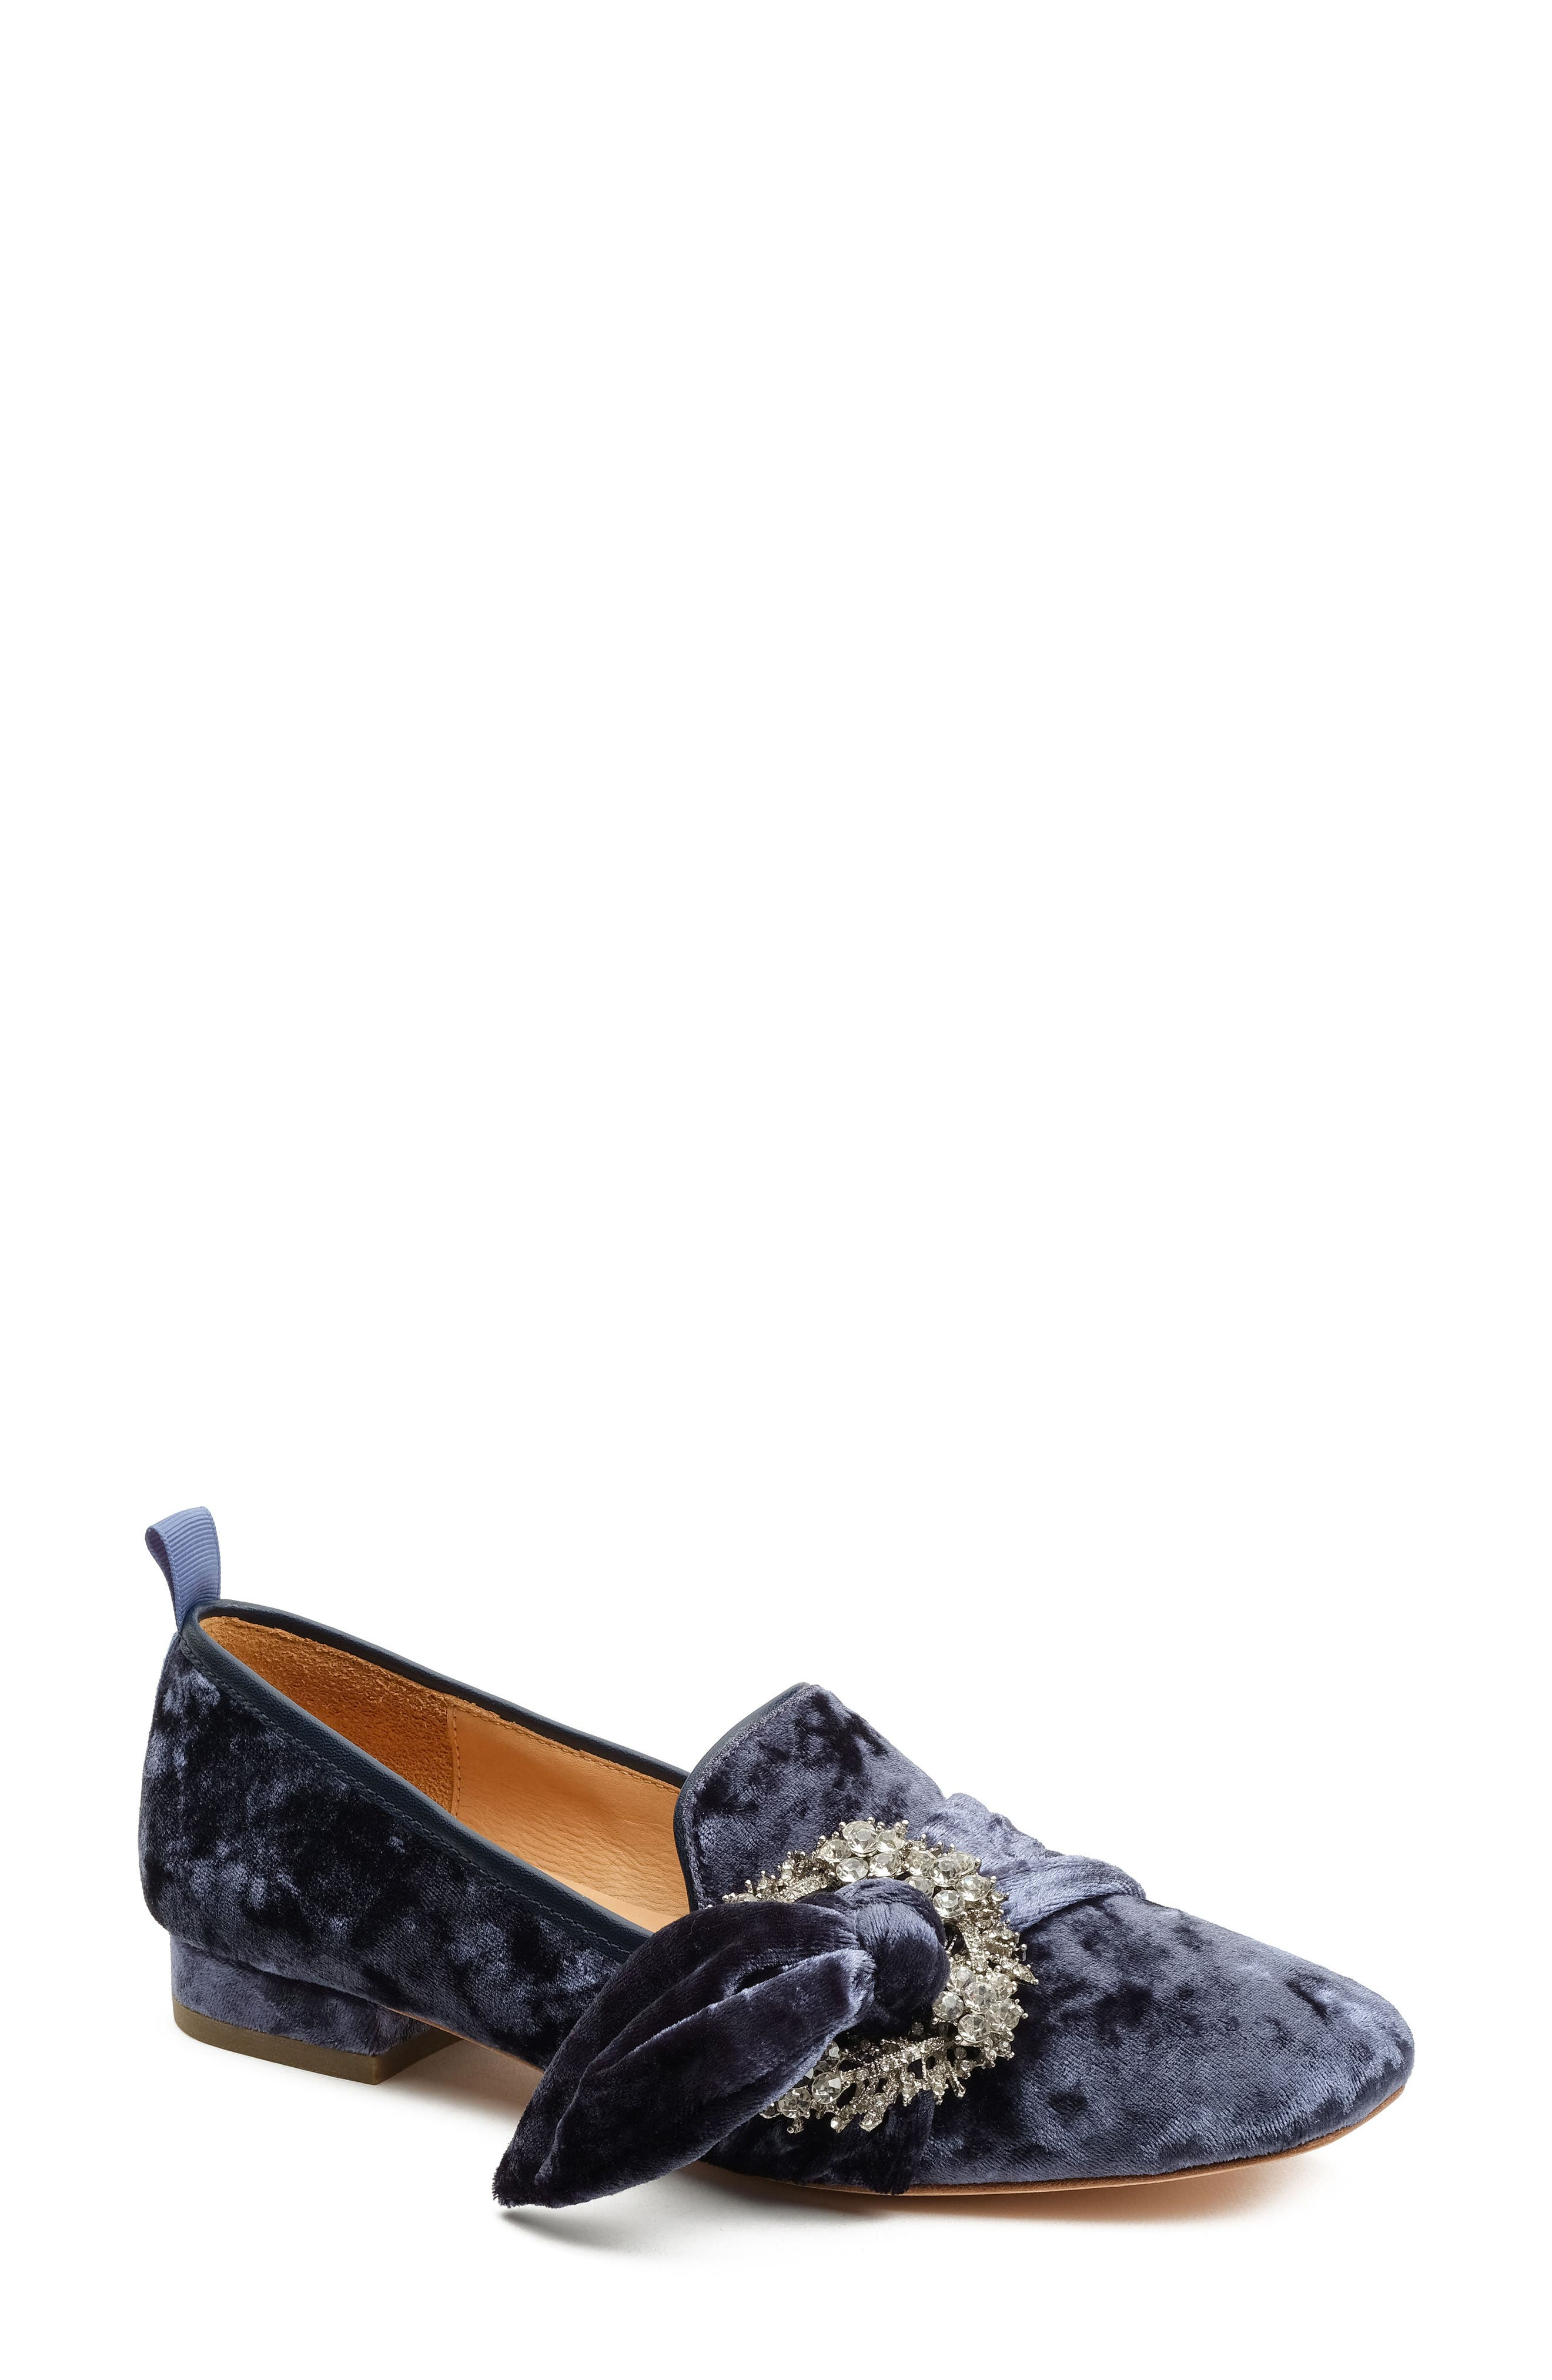 Main Image - Bill Blass Laverne Embellished Loafer (Women)